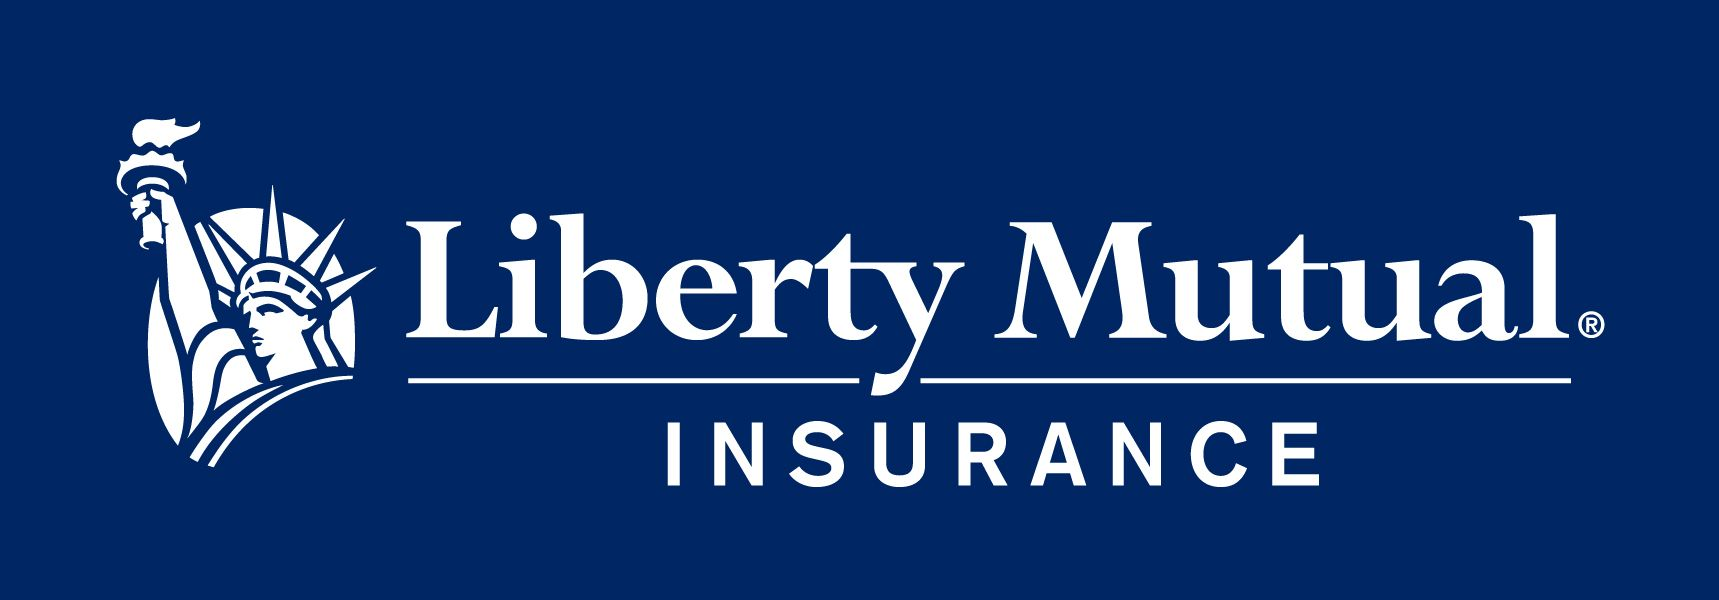 Liberty Mutual Quote Fascinating Image Result For Liberty Mutual Insurance  Branding  Pinterest . Design Inspiration